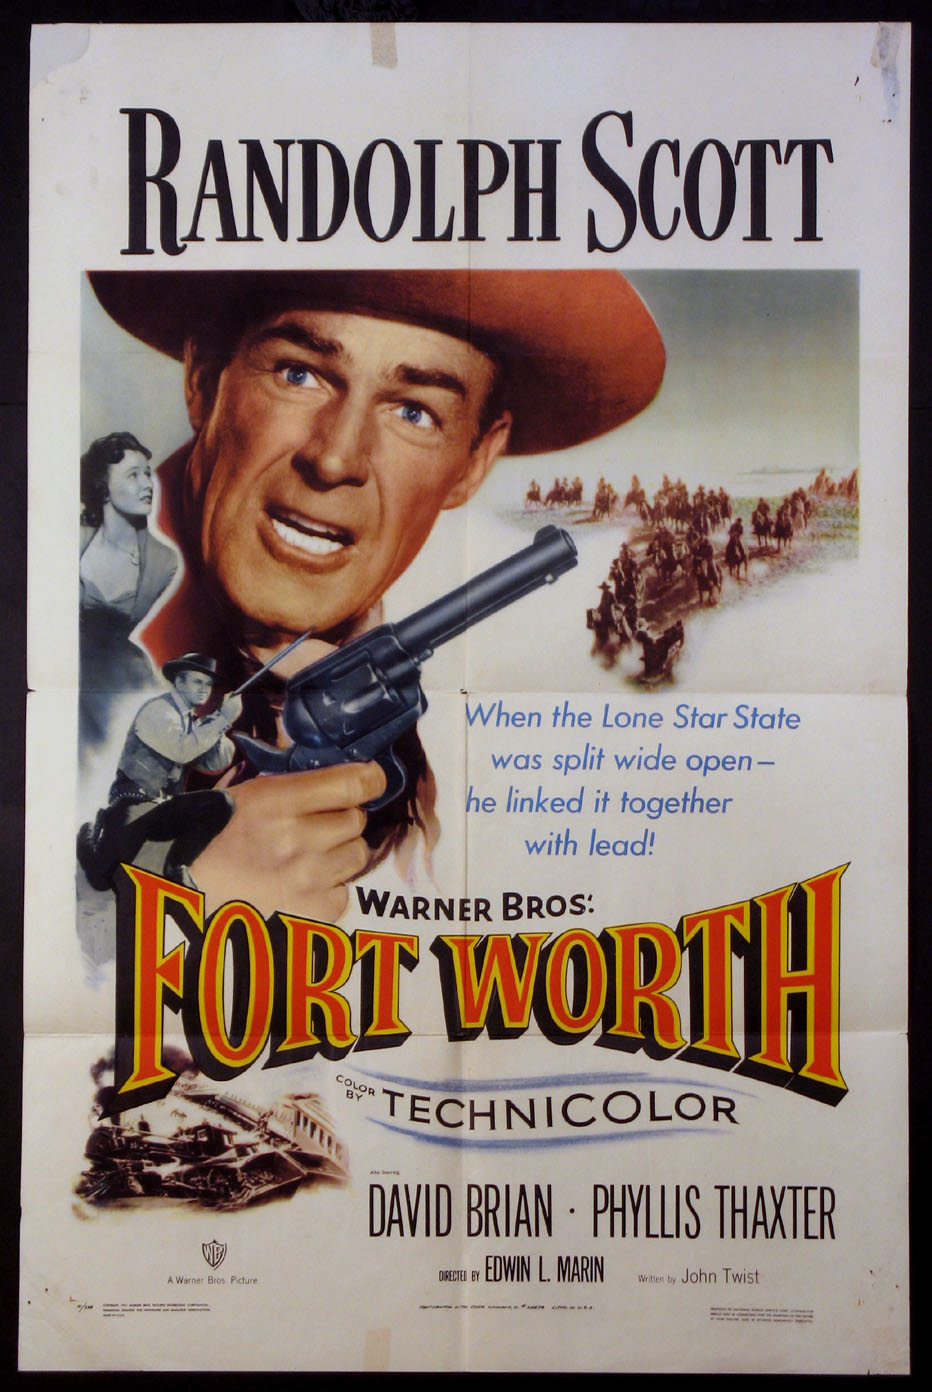 FORT WORTH @ FilmPosters.com